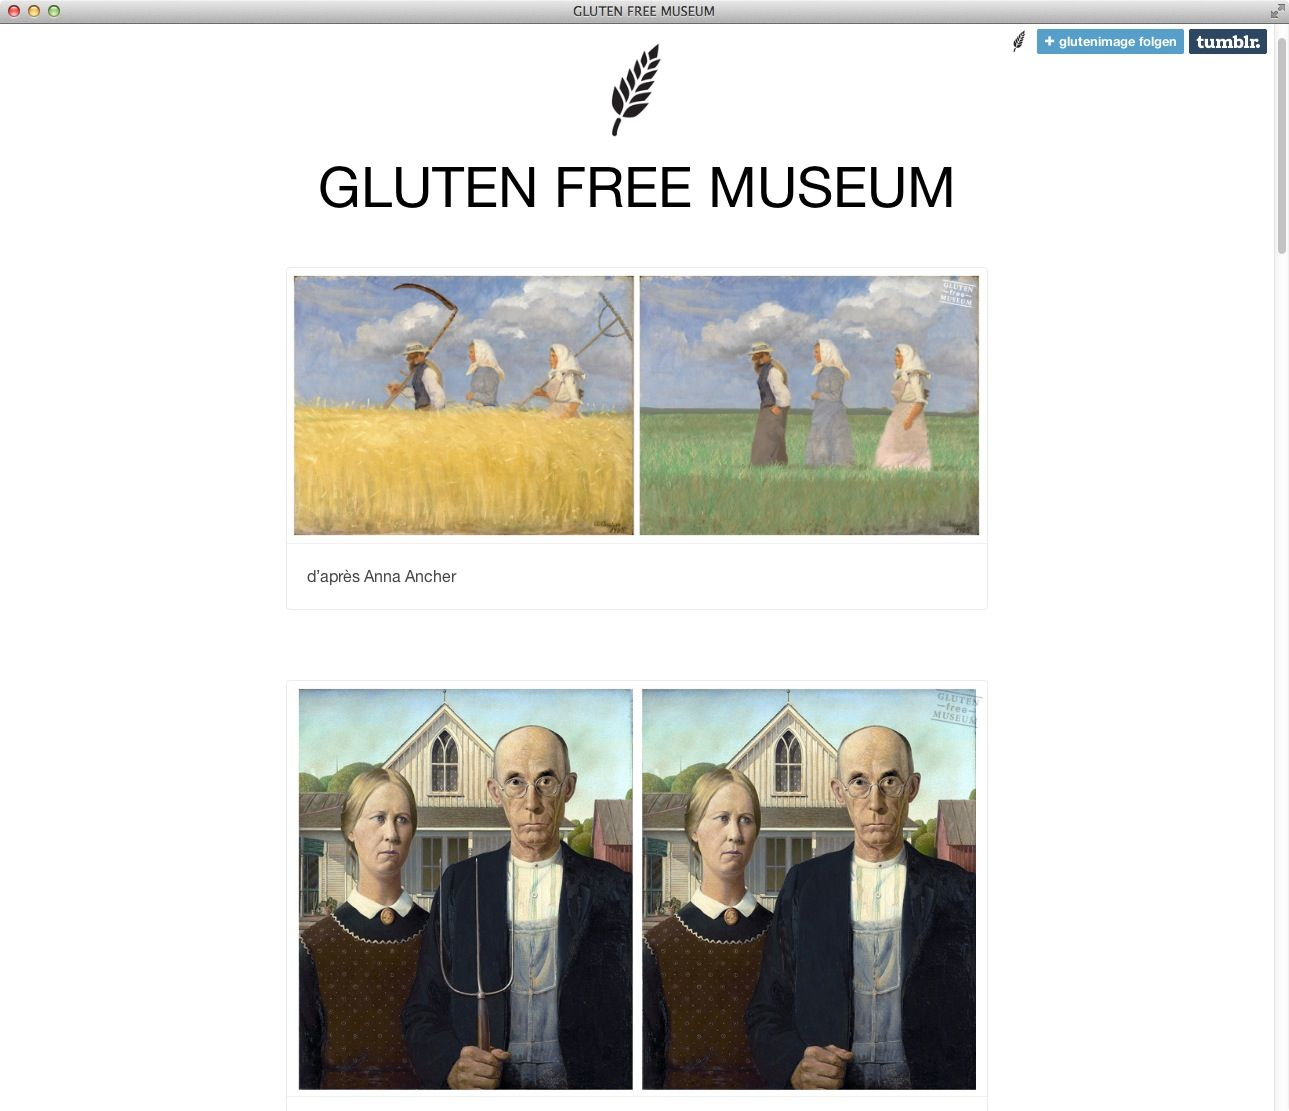 Screenshot/ Gluten Free Museum